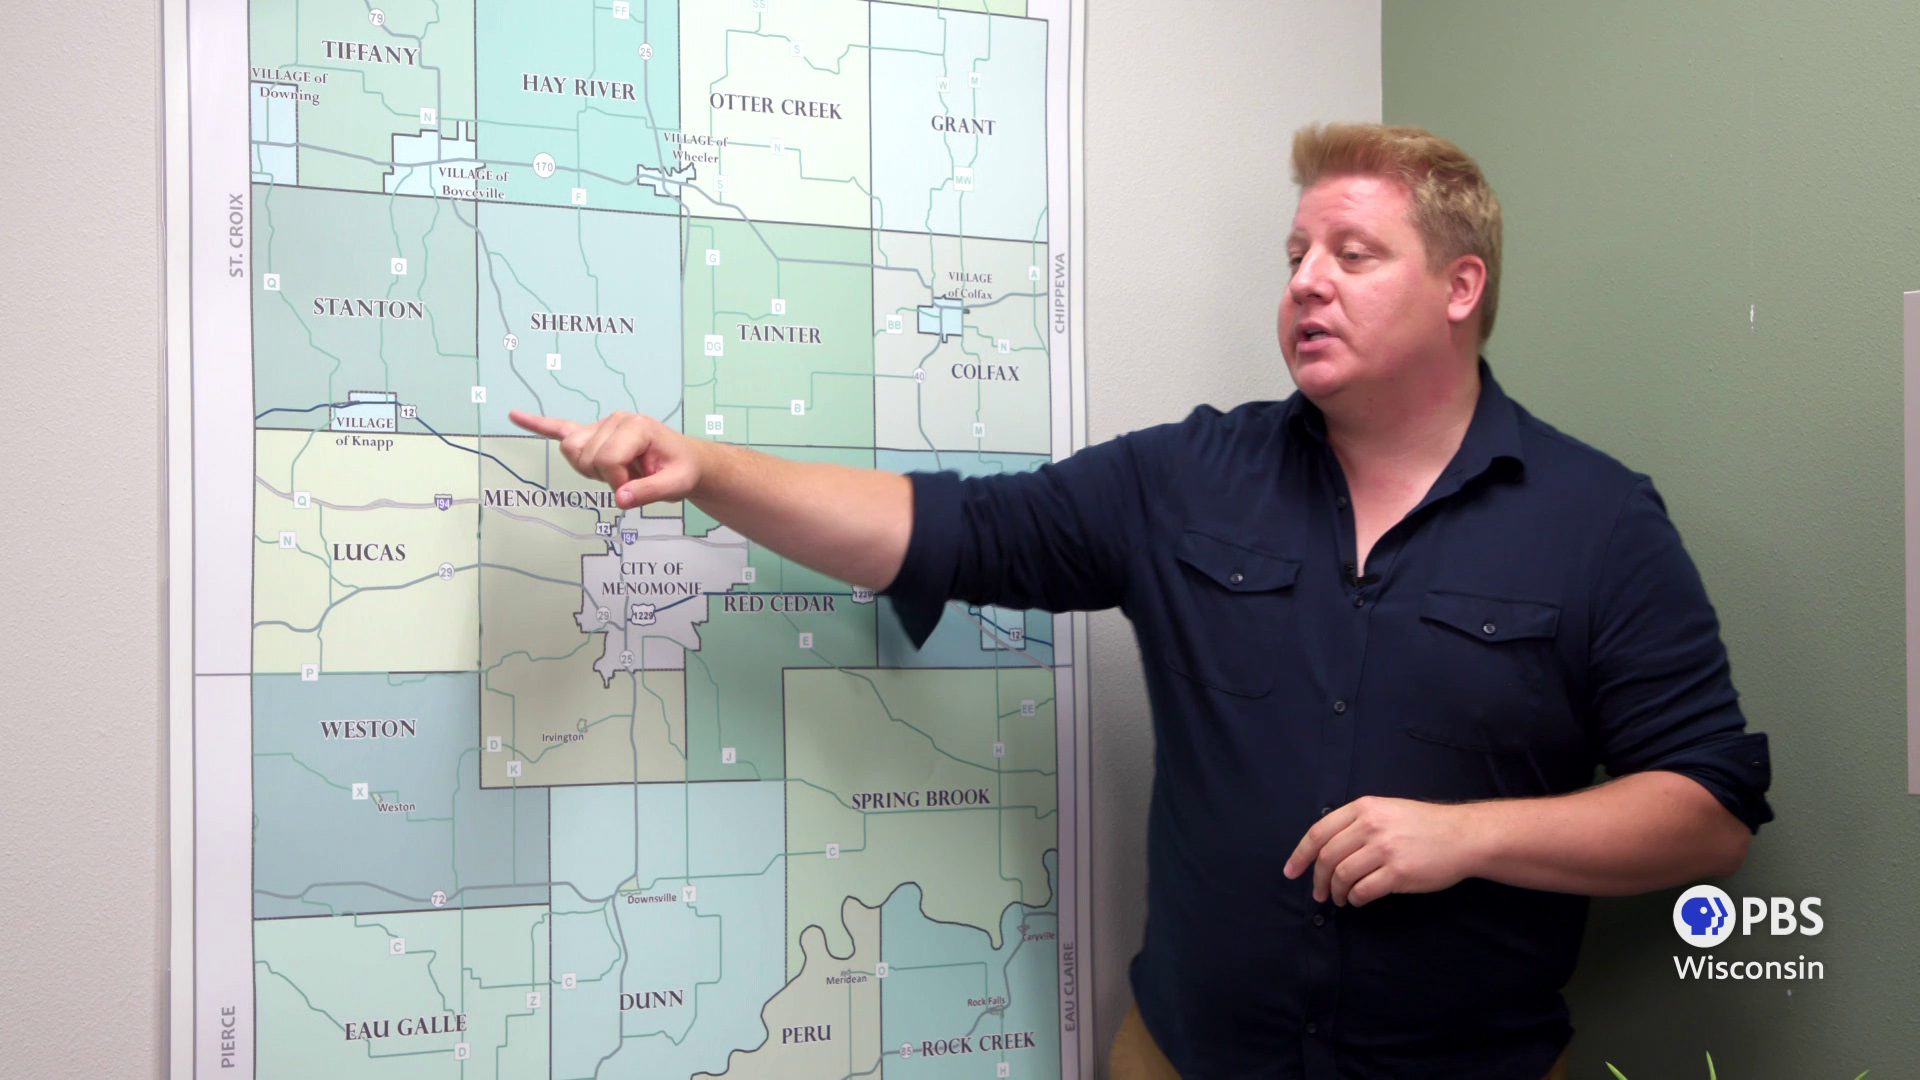 Andrew Mercil points to municipalities on a wall map of Dunn County.